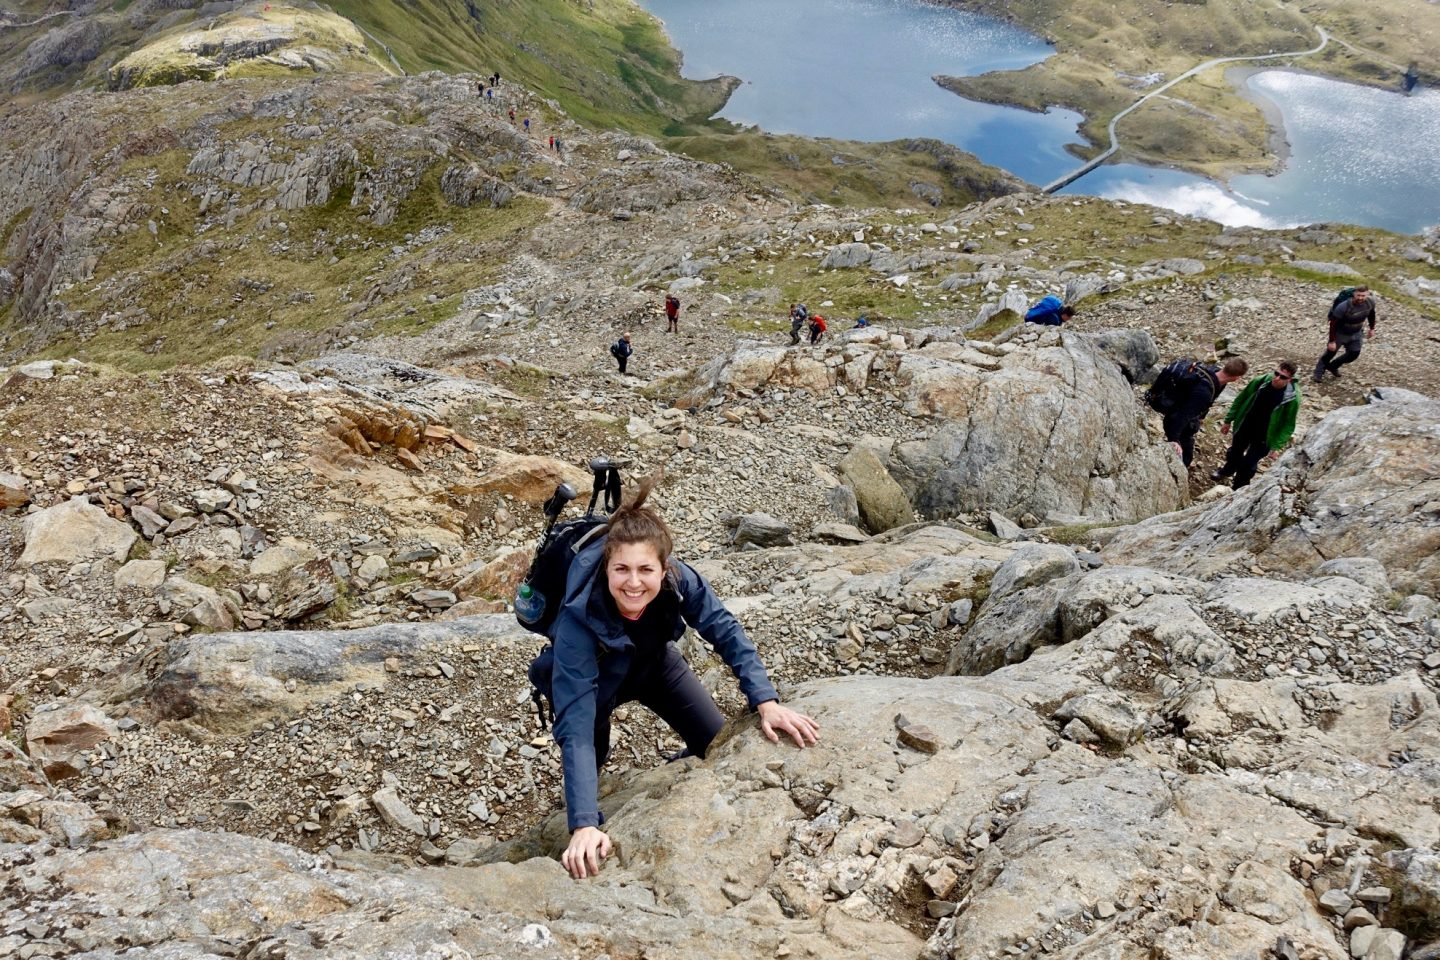 crib goch route up snowdon: nell scrambling up Bad Step to the ridge